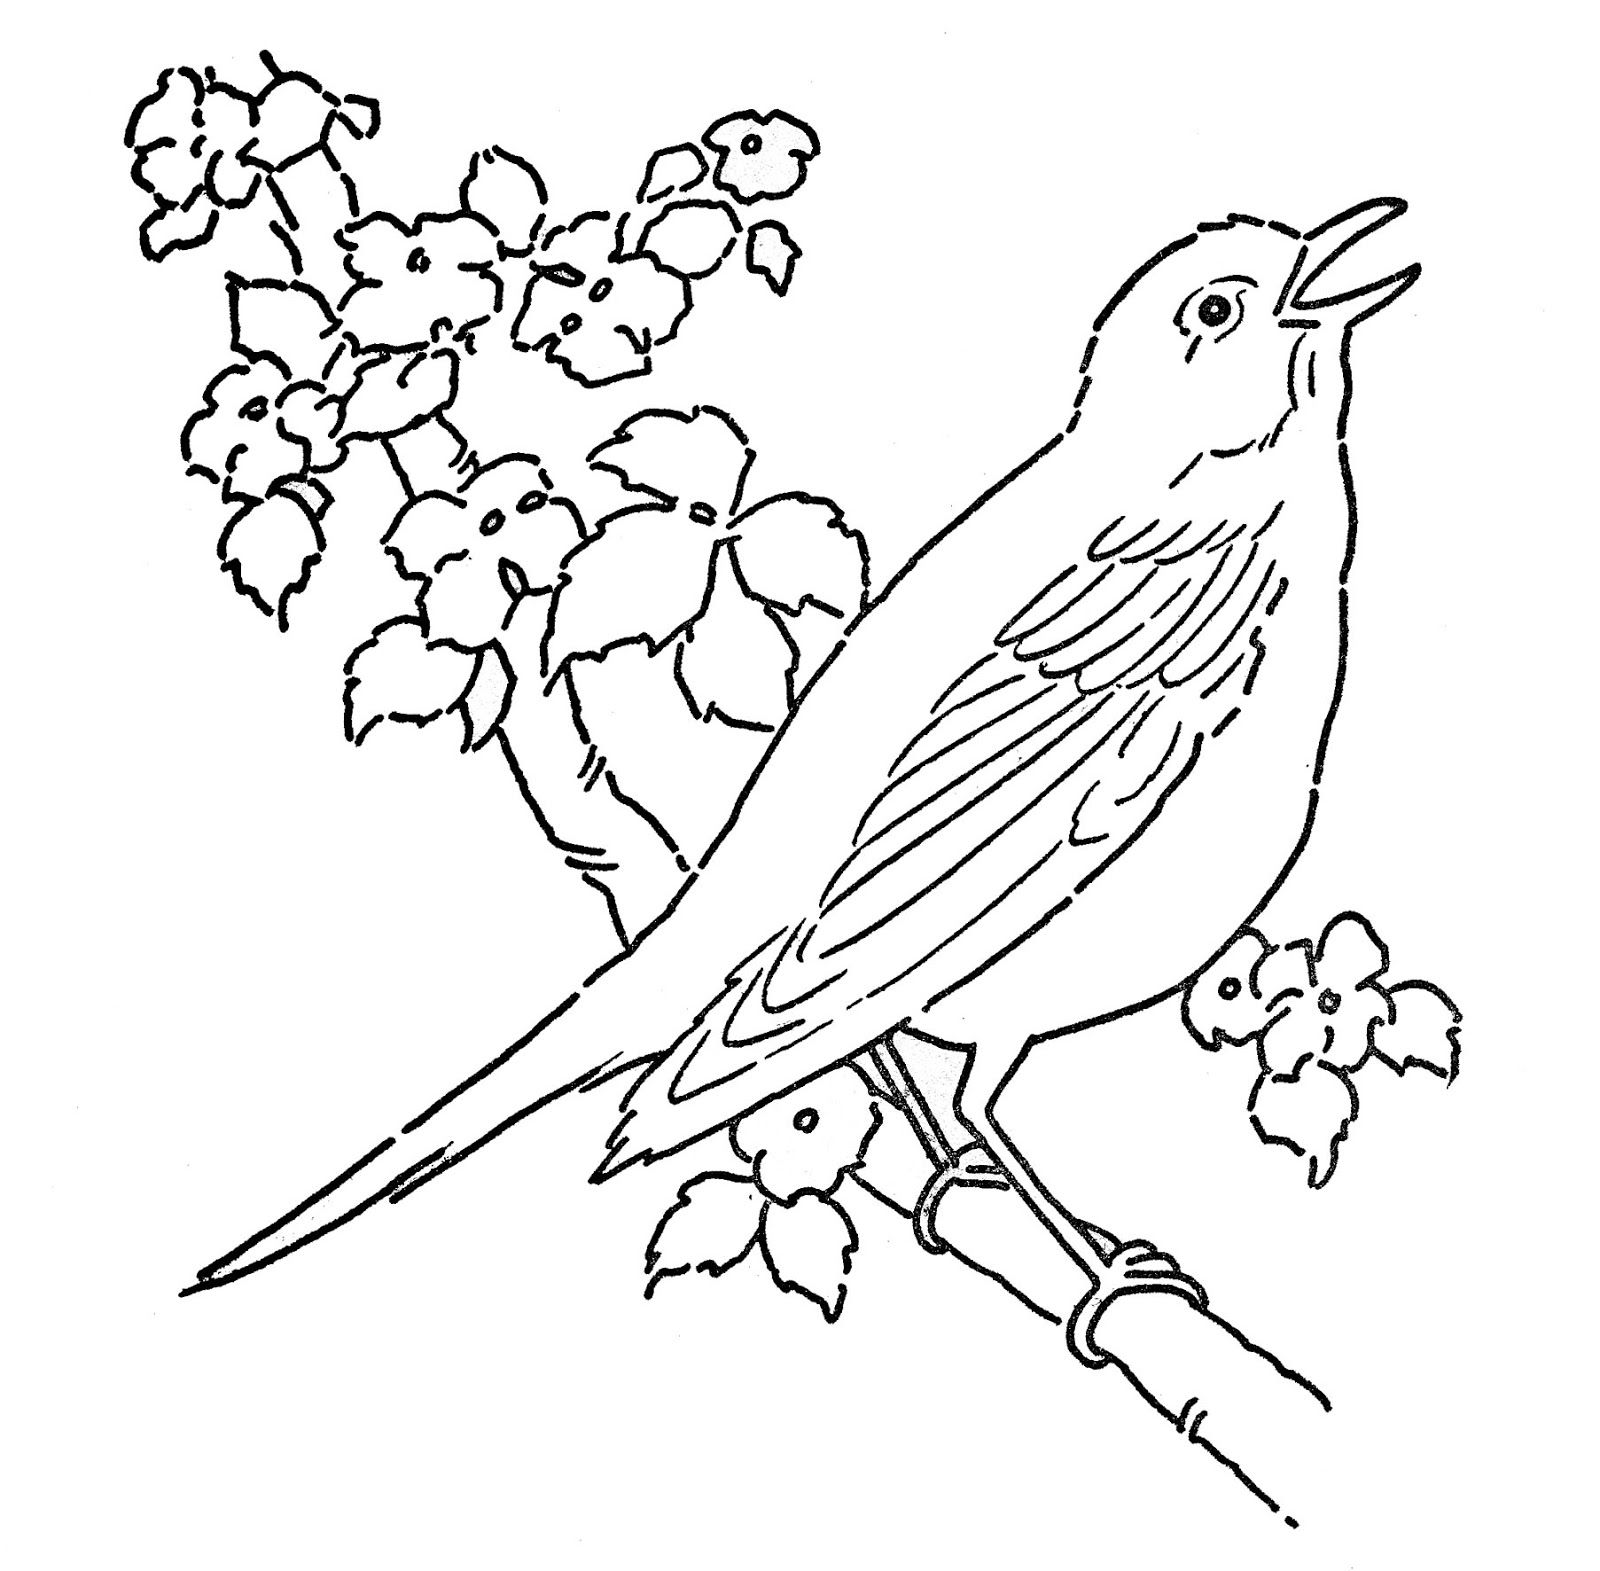 art pages | Line Art - Coloring Page - Bird with Blossoms - The Graphics Fairy